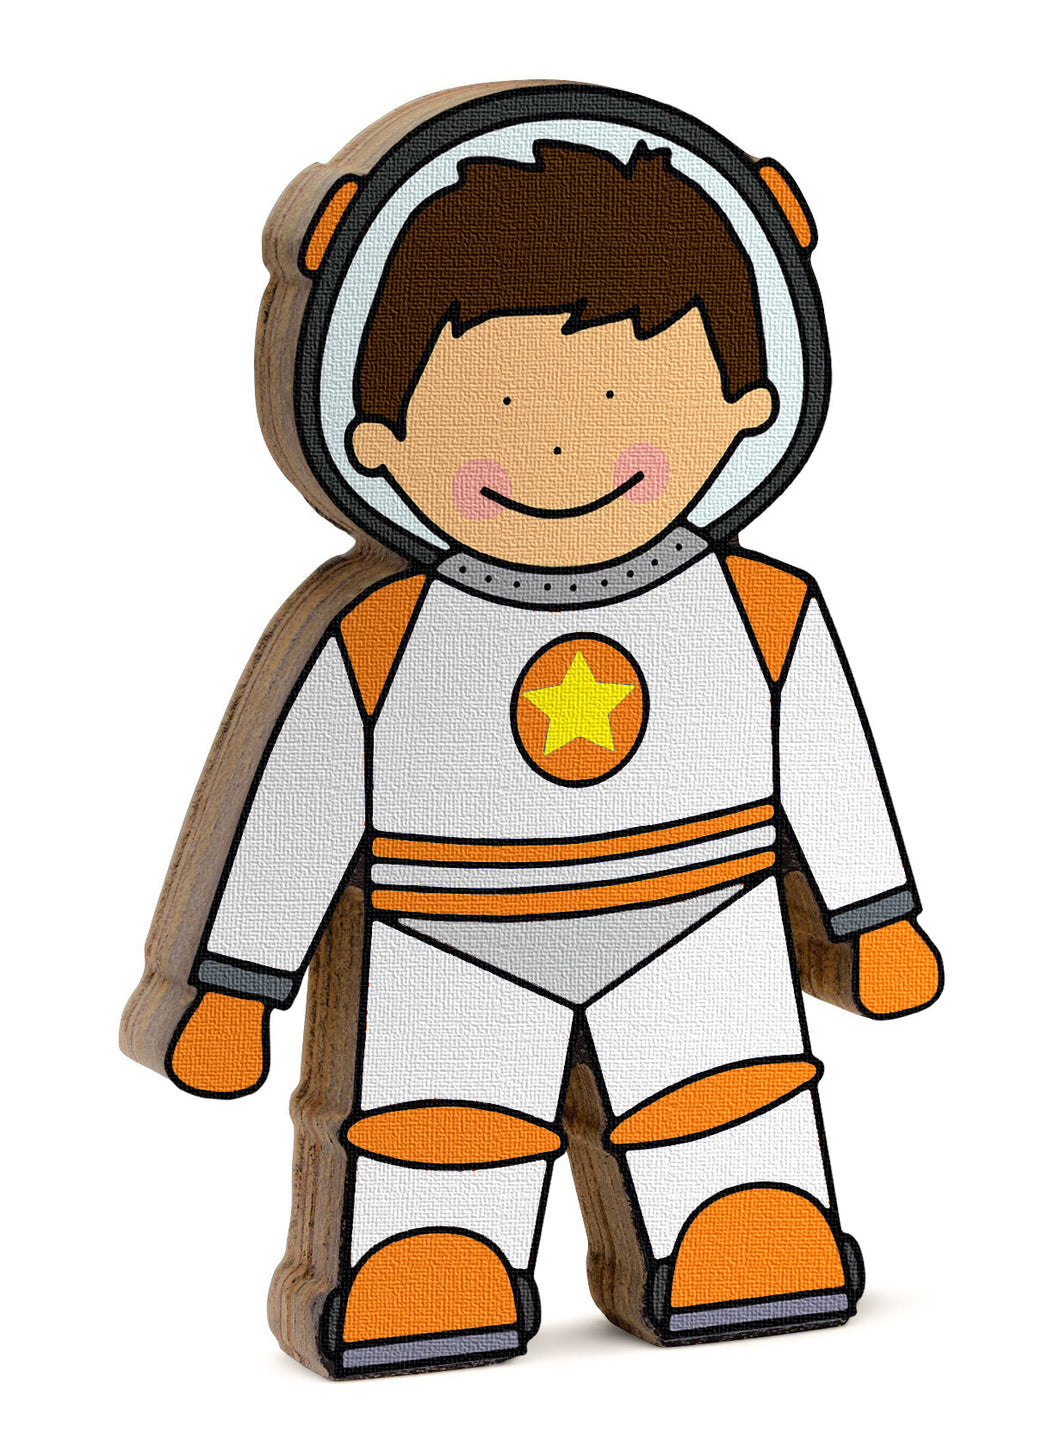 Spaceman shelfie orange and white space suit